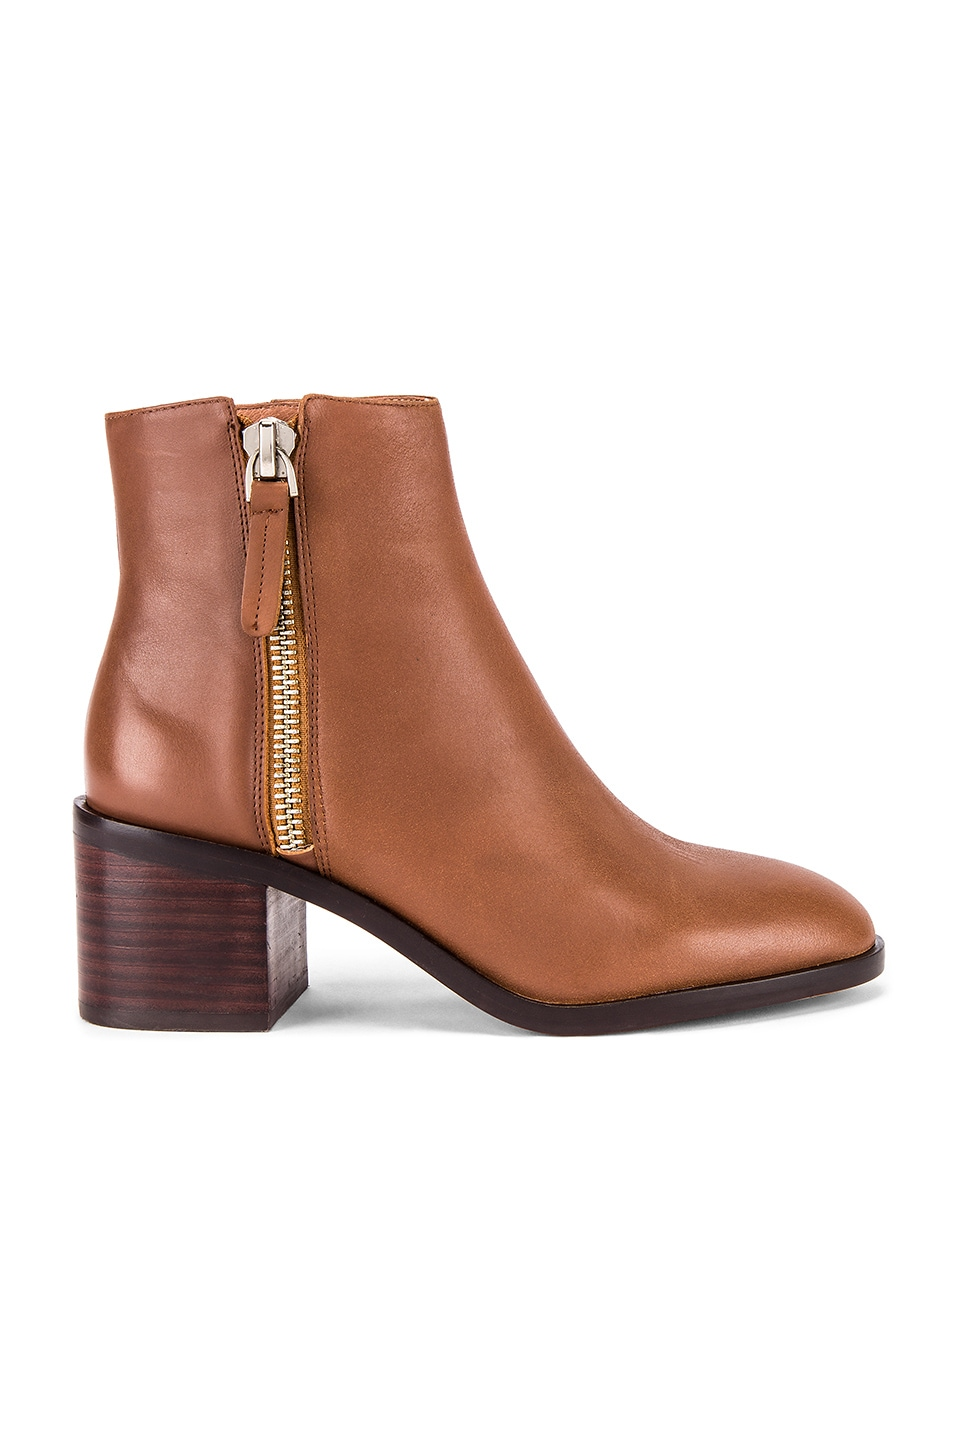 Alias Mae Gazelle Bootie in Tan Burnished